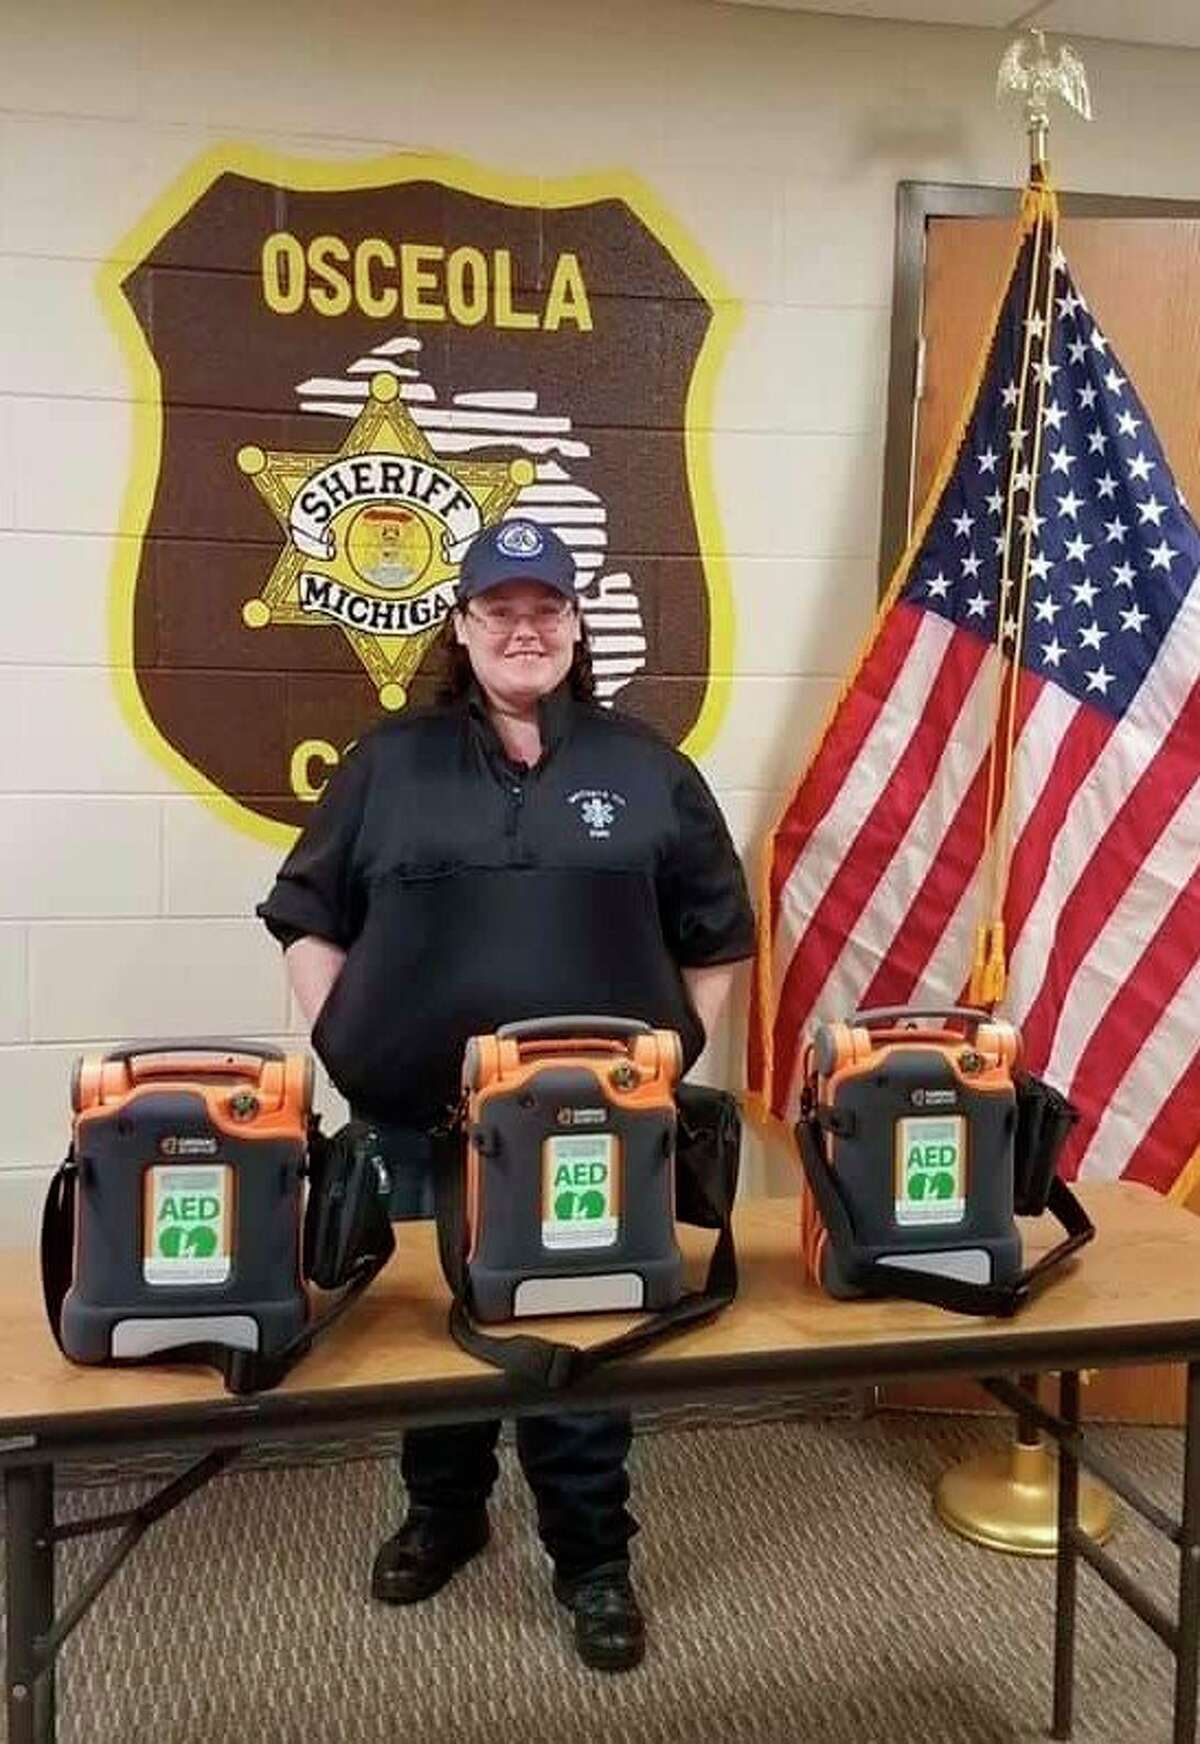 Jenny Edstrom, who works for Mecosta County EMS and is the wife of an Osceola County deputy, was instrumental in procuring the AED's donated to local agencies in Mecosta, Osceola and Lake counties. (Photo courtesy of Osceola County Sheriff's department)